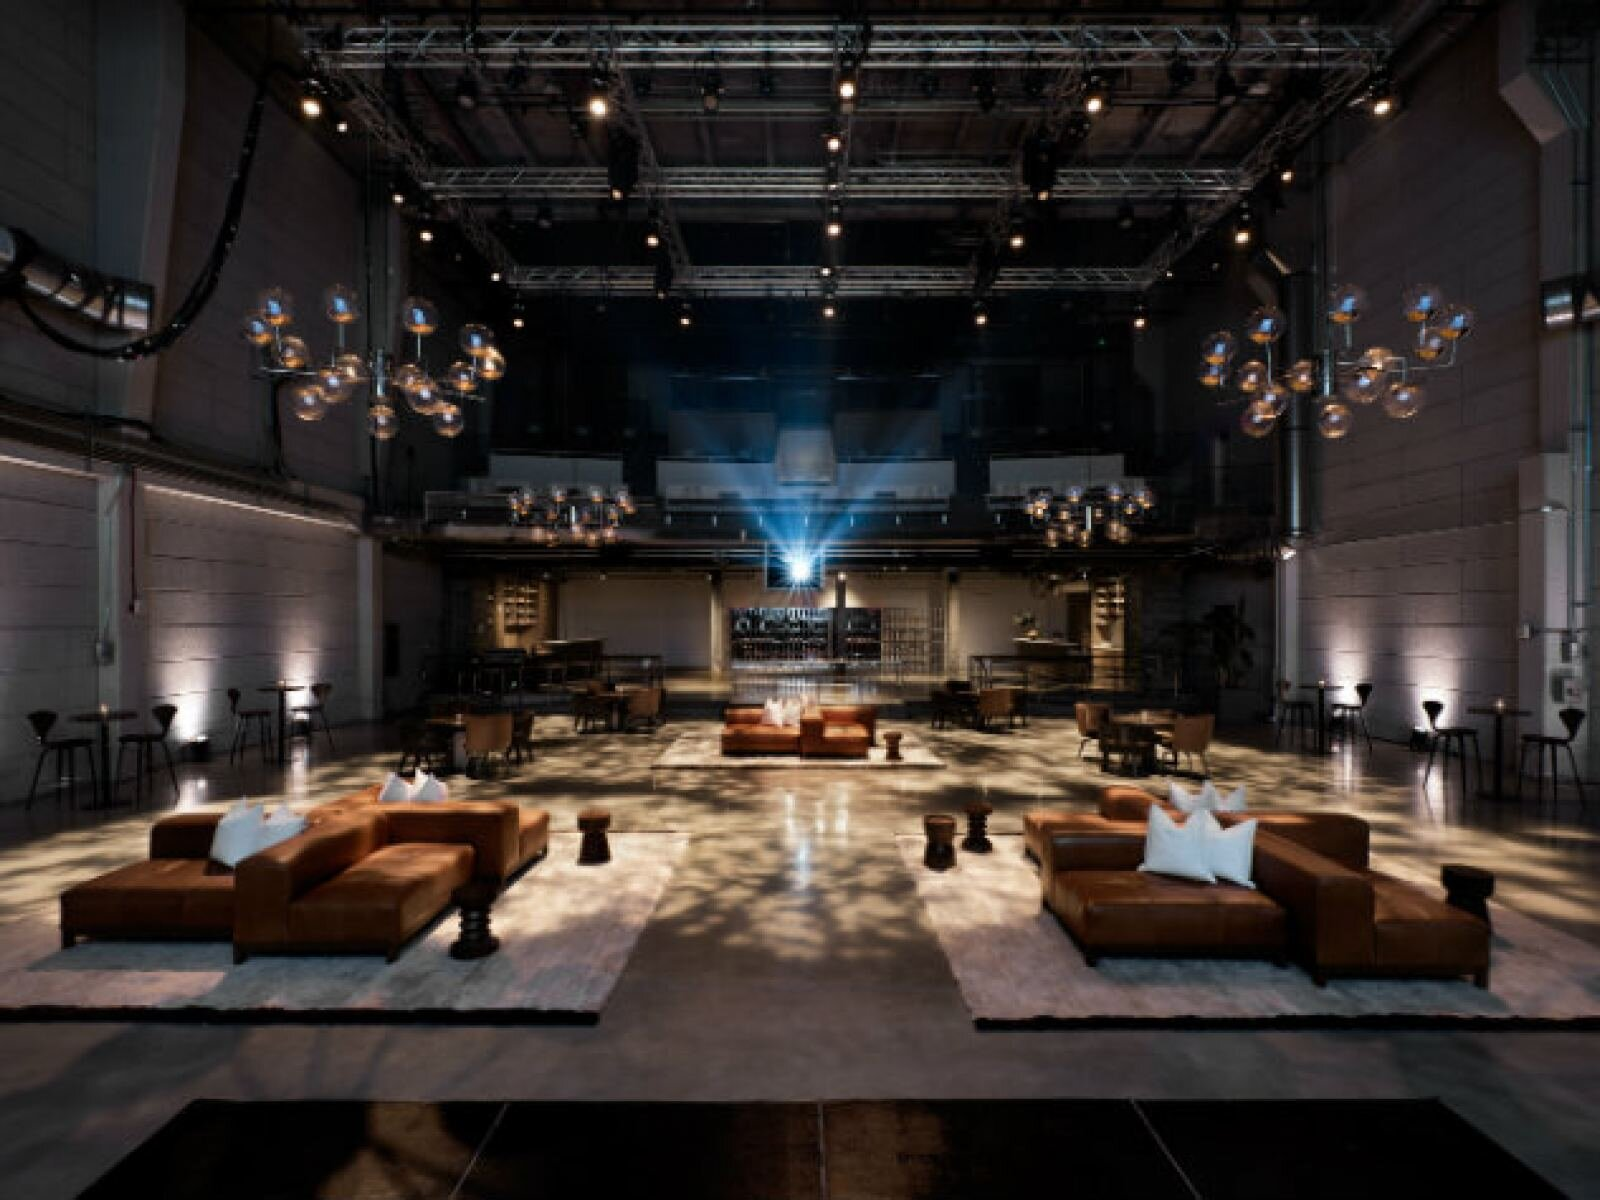 A new wave of luxury co-working spaces caters to a more discerning class of entrepreneur.    bbc.com, April 26, 2016